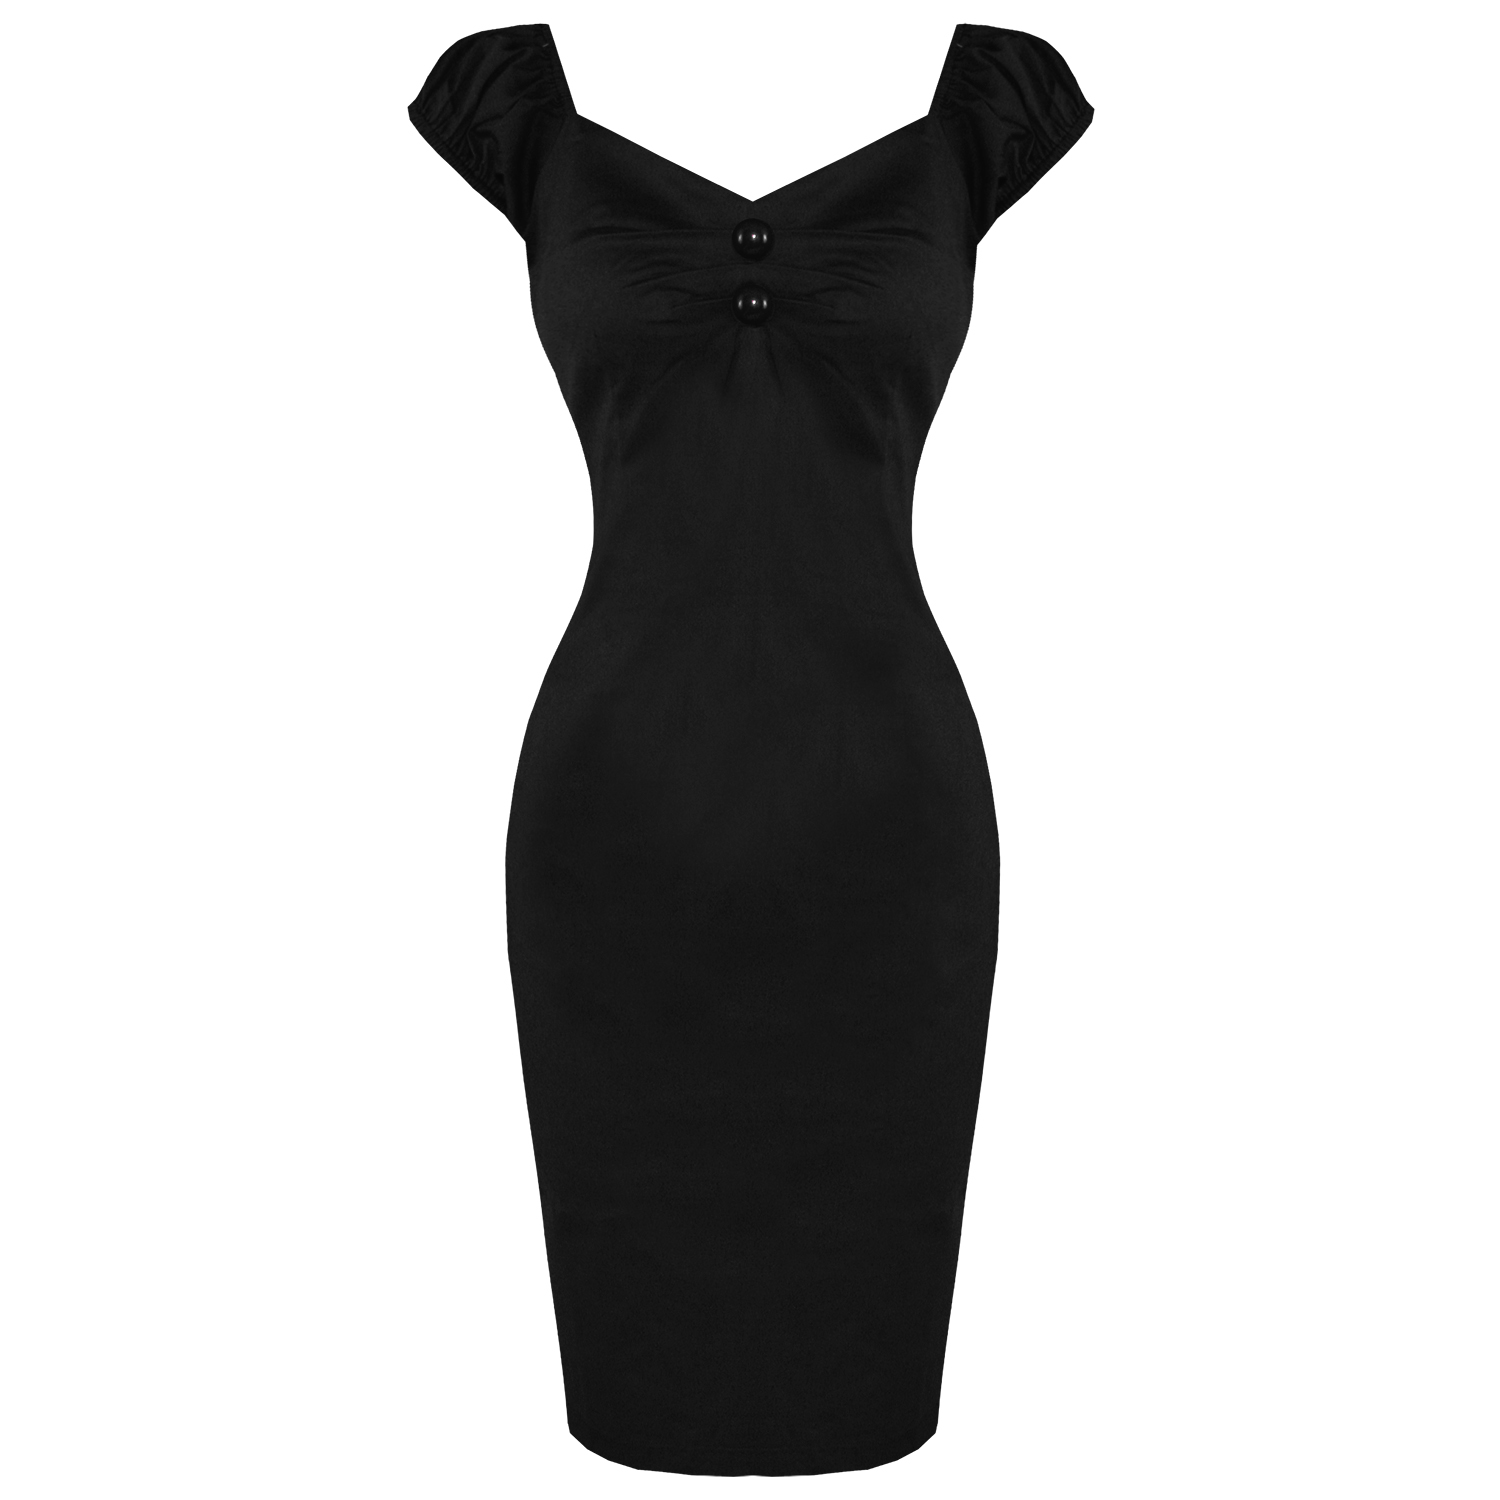 COLLECTIF DOLORES PLAIN BLACK FITTED VINTAGE 1950S CAREER PENCIL ...